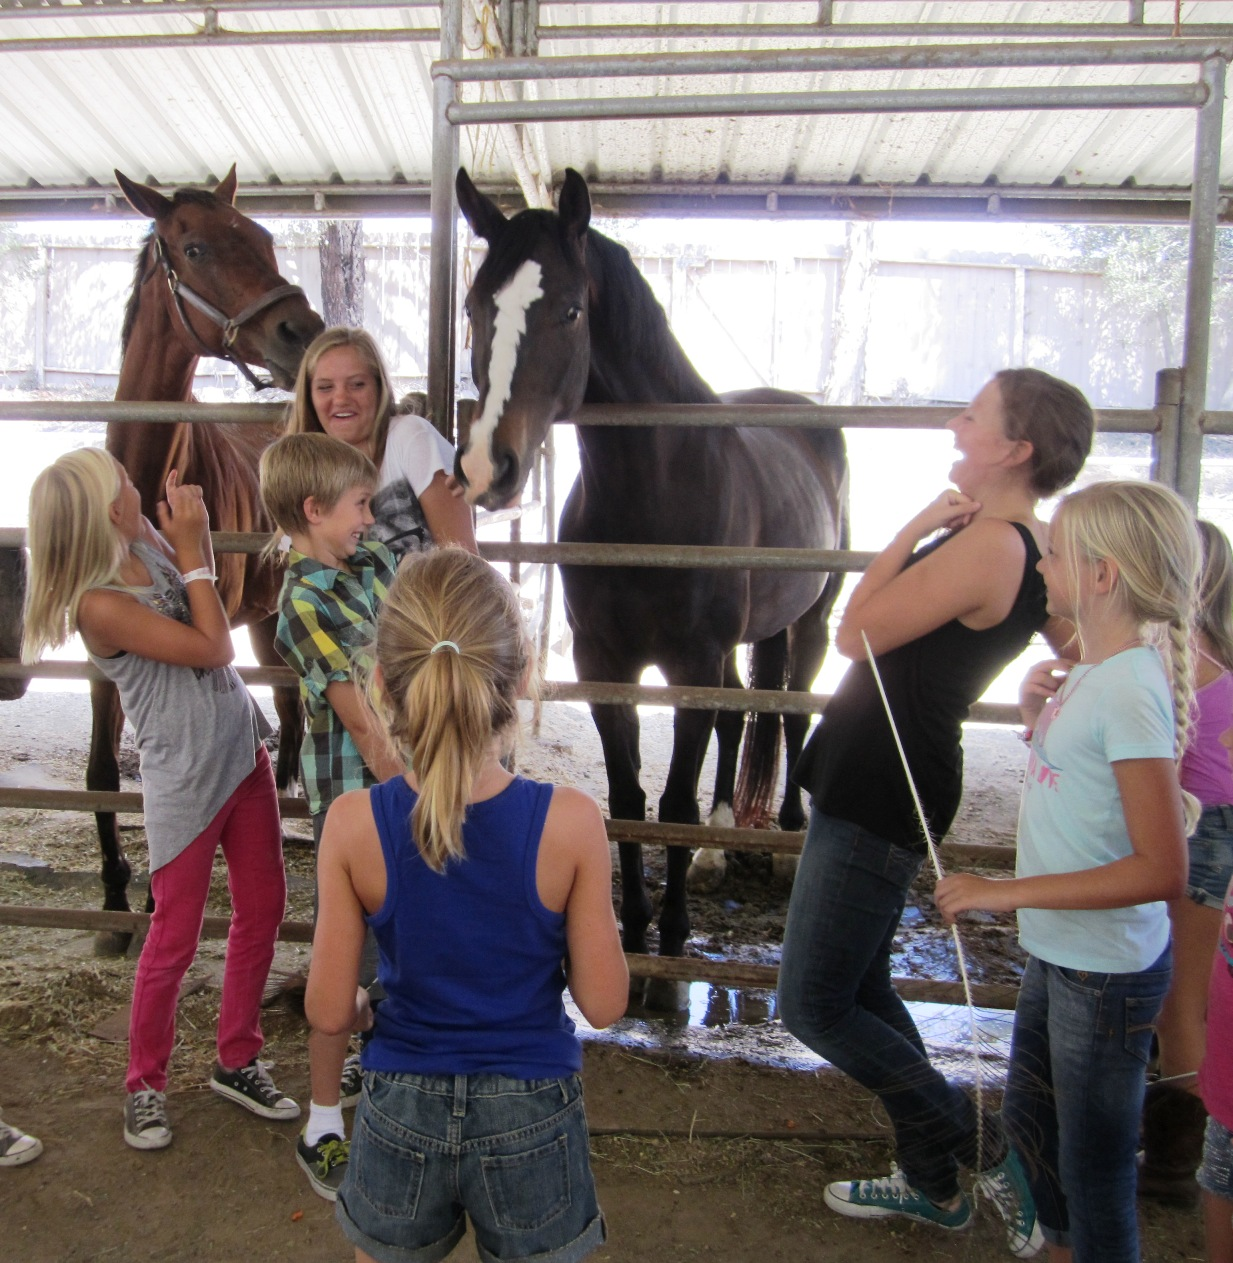 Childrens Birthday Party Fun At The Horse Stables San Diego County